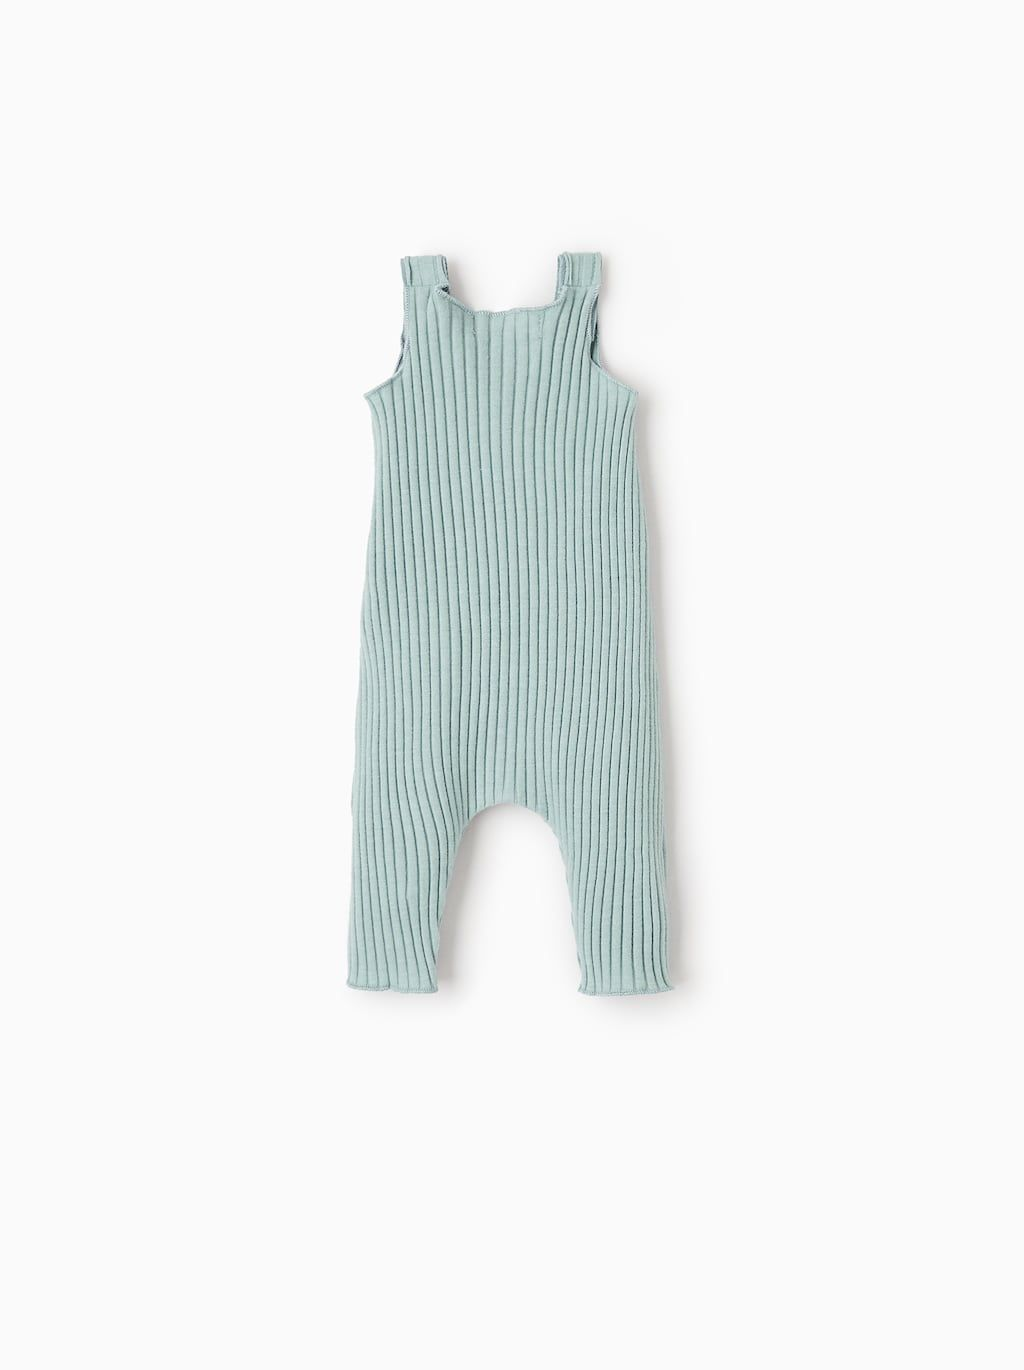 3e63fae7 Image 5 of RIBBED ROMPER from Zara | Bebe | Rompers, Zara, Clothes